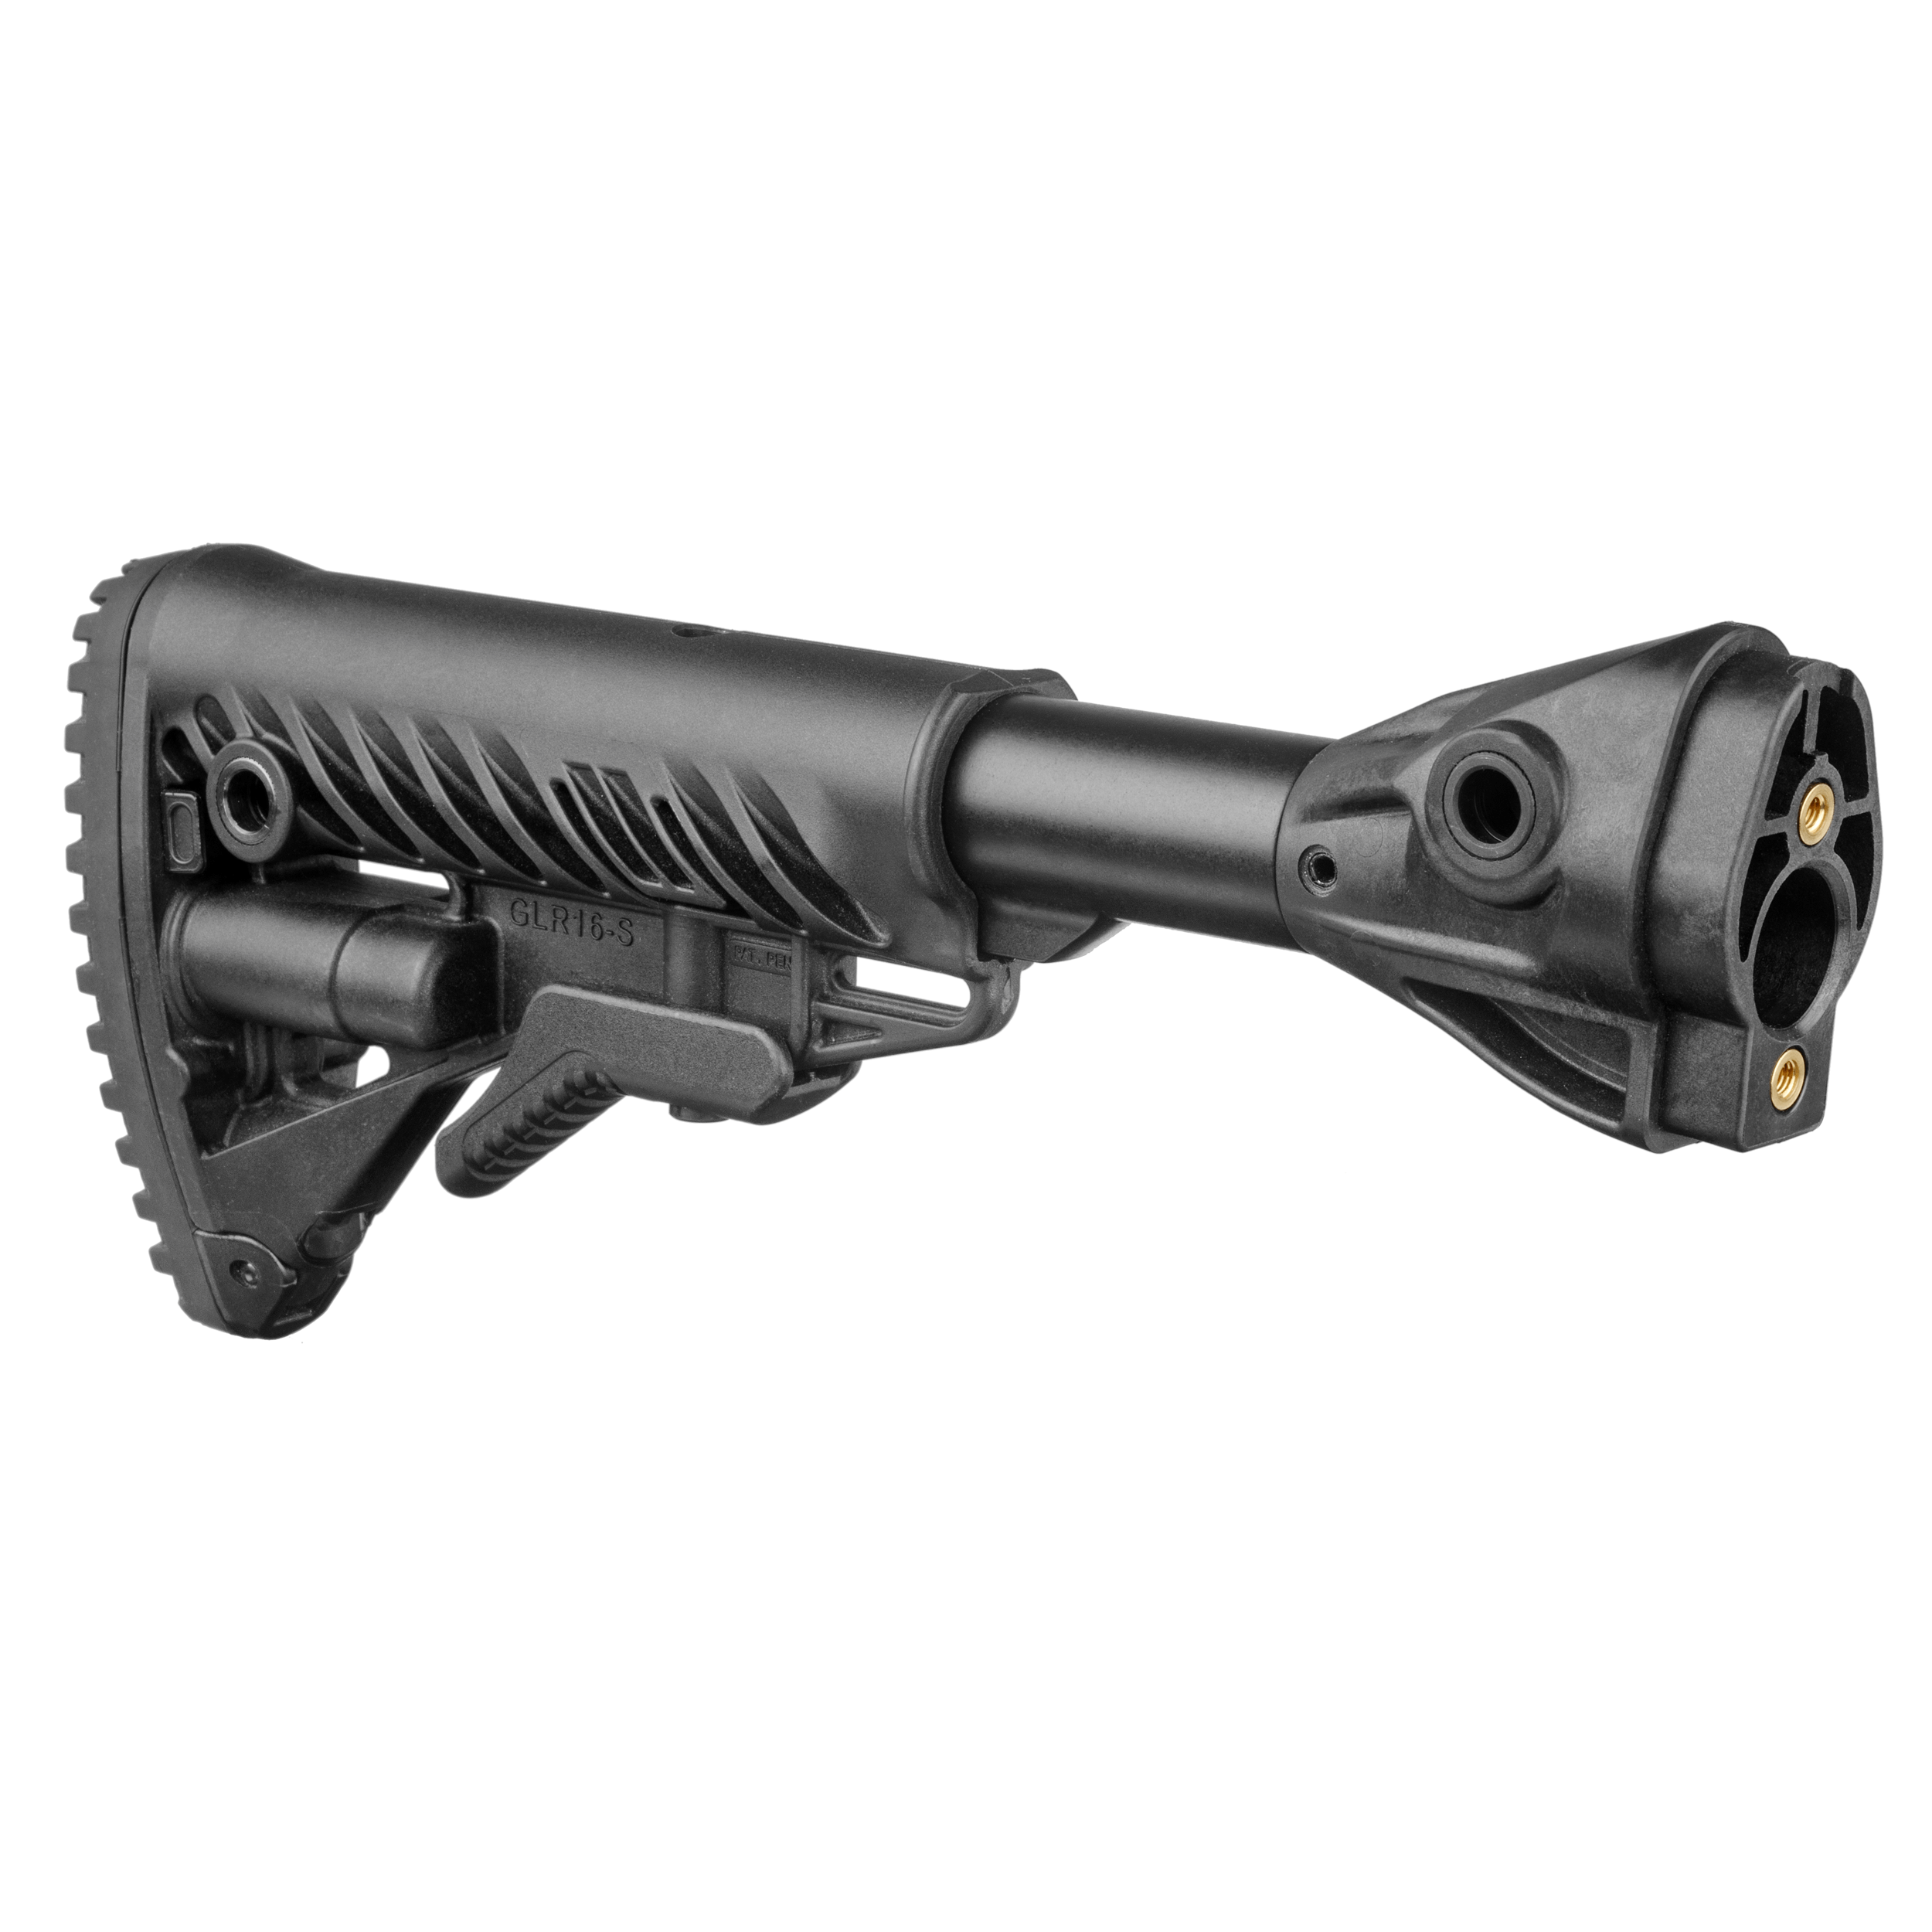 H&K G3 Collapsible Buttstock / AR15 Style